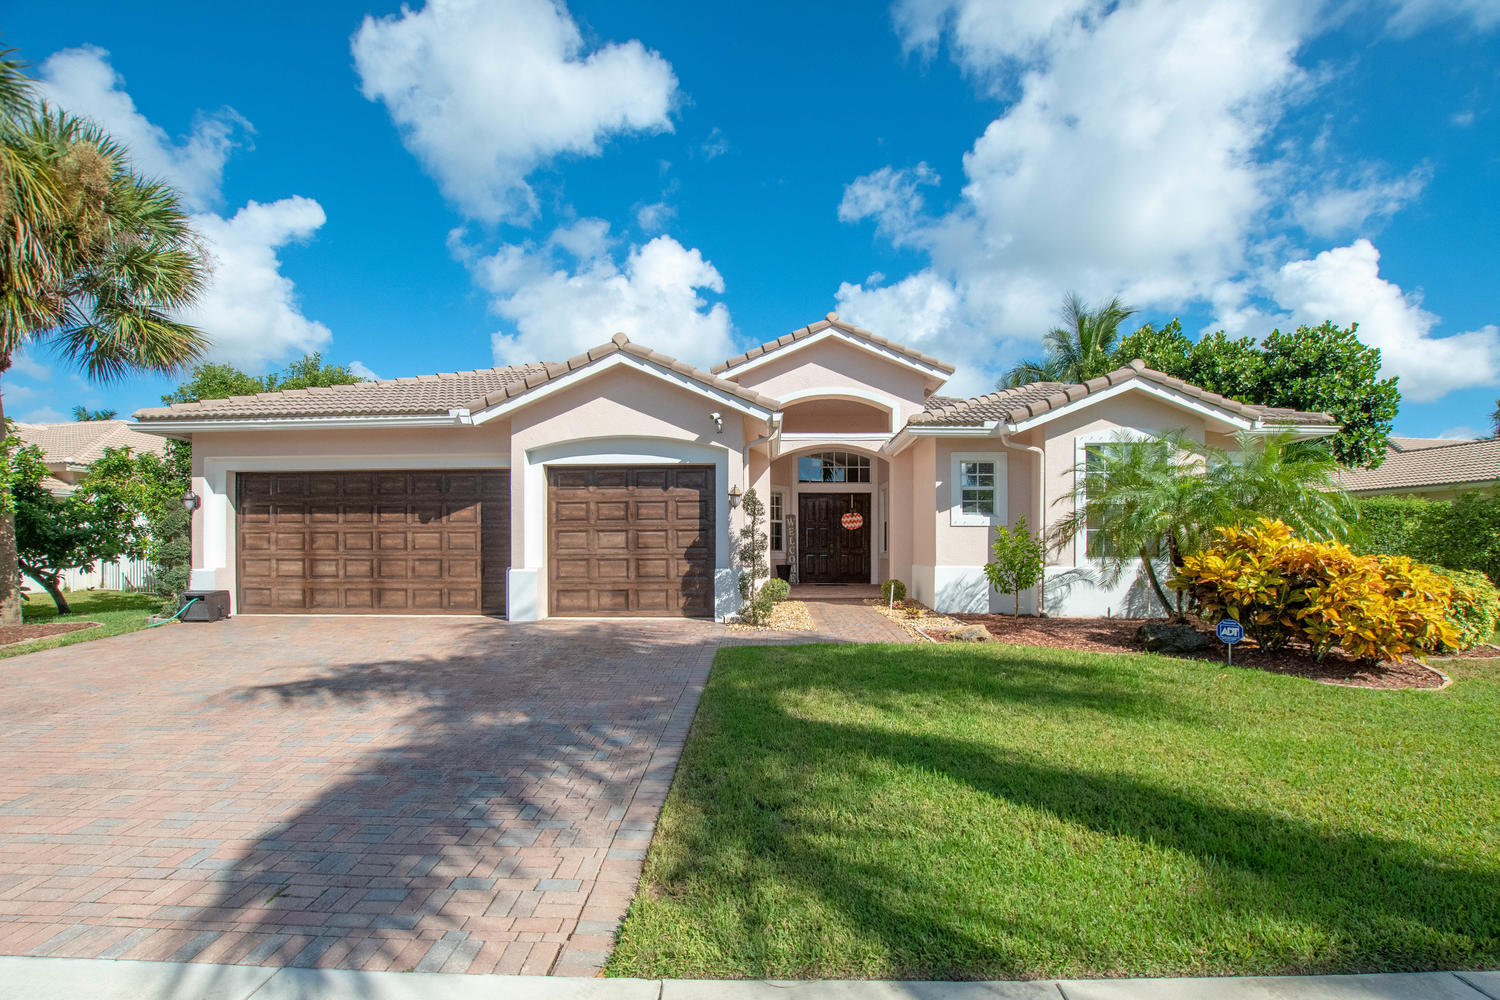 4672 Sugar Beach Way, Wellington, Florida 33449, 5 Bedrooms Bedrooms, ,3 BathroomsBathrooms,Single Family,For Sale,Sugar Beach,RX-10568551